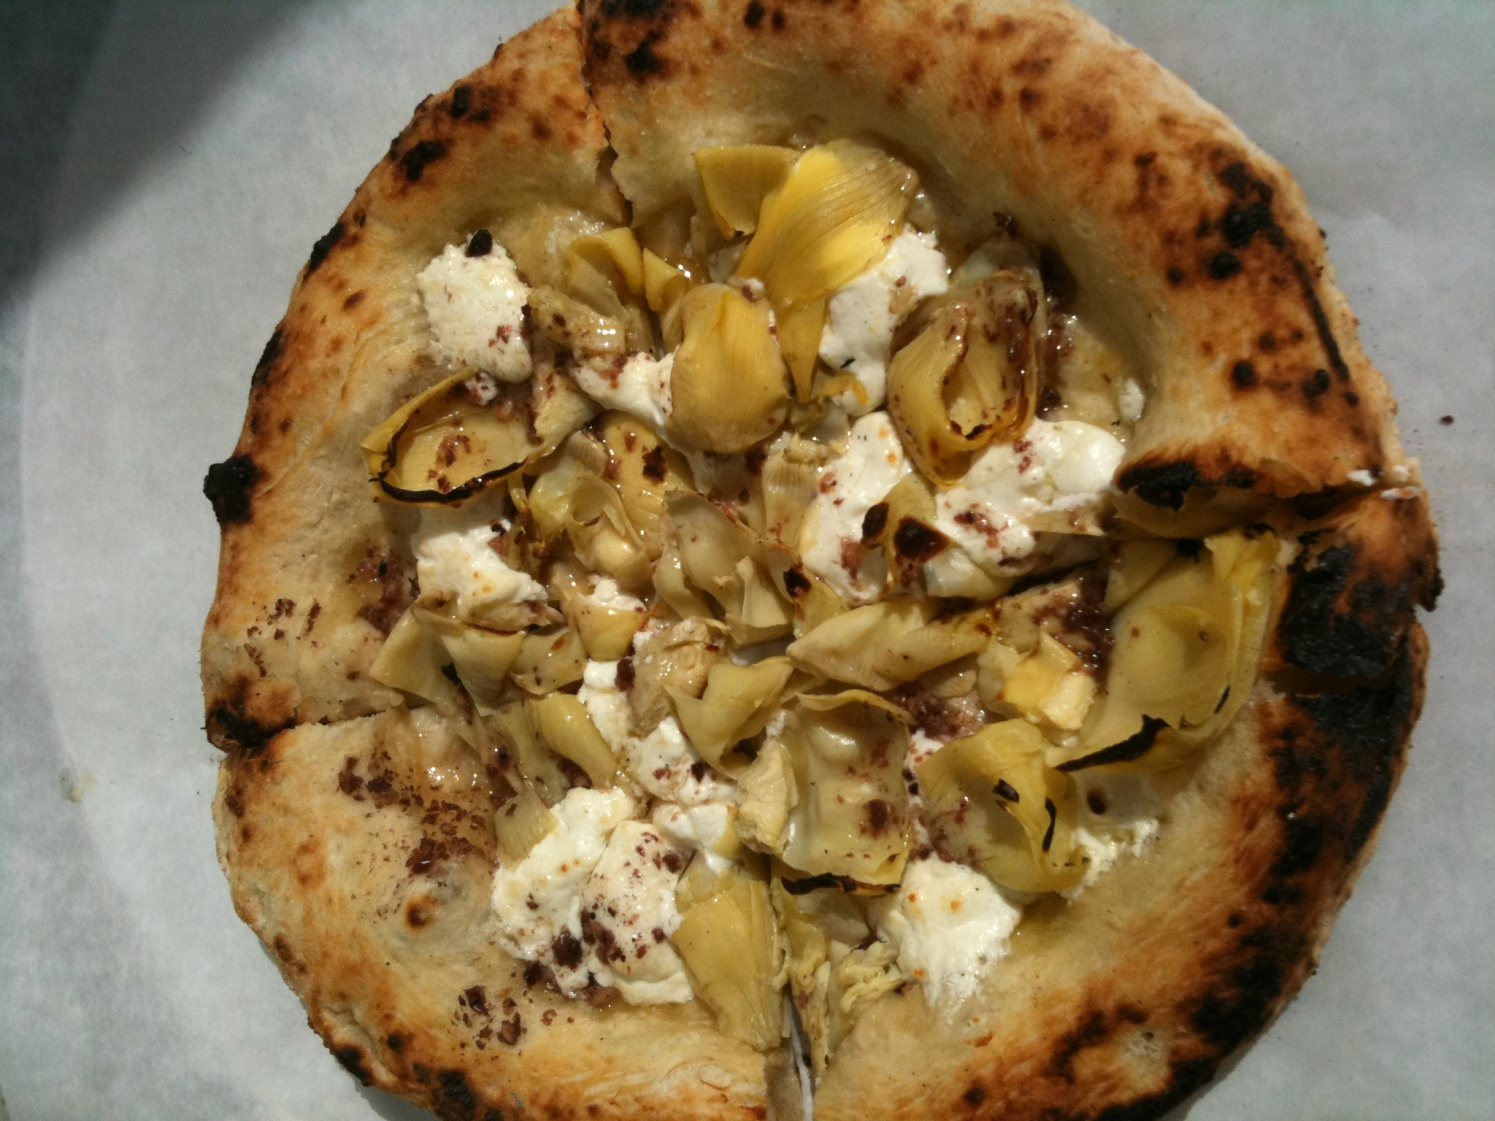 The luscious goat cheese & artichoke pizza from Pizzetteria Brunetti.